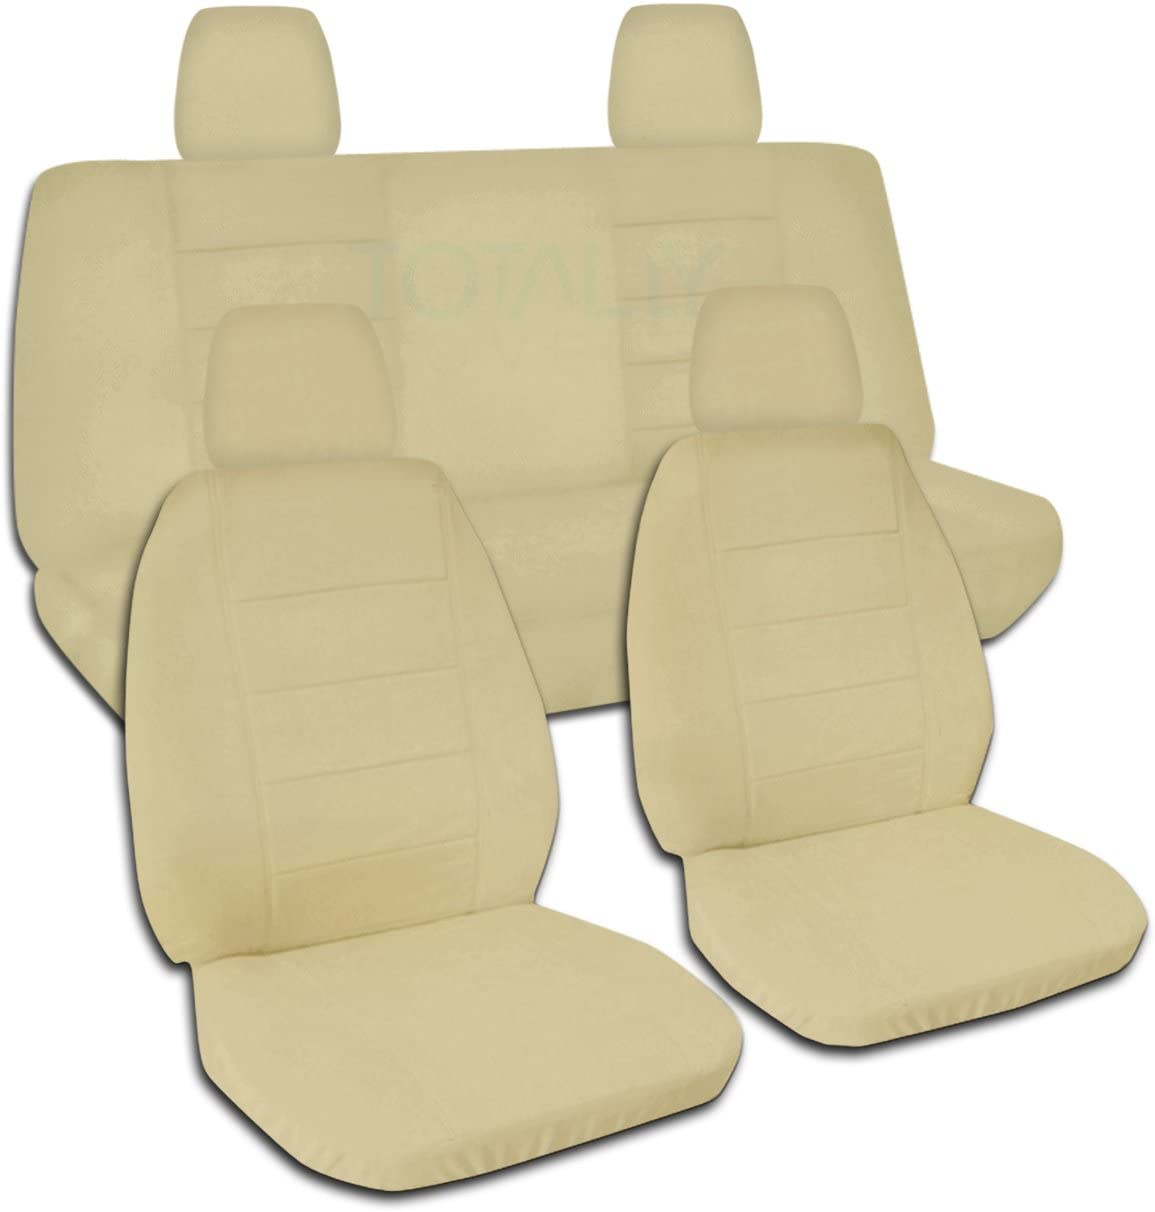 Totally Covers Compatible with 2018-2020 Jeep Wrangler JL Solid Color Seat Covers: Sand - Full Set: Front & Rear (22 Colors) 2-Door/4-Door Solid/Split Bench Back w/wo Armrest/Headrest